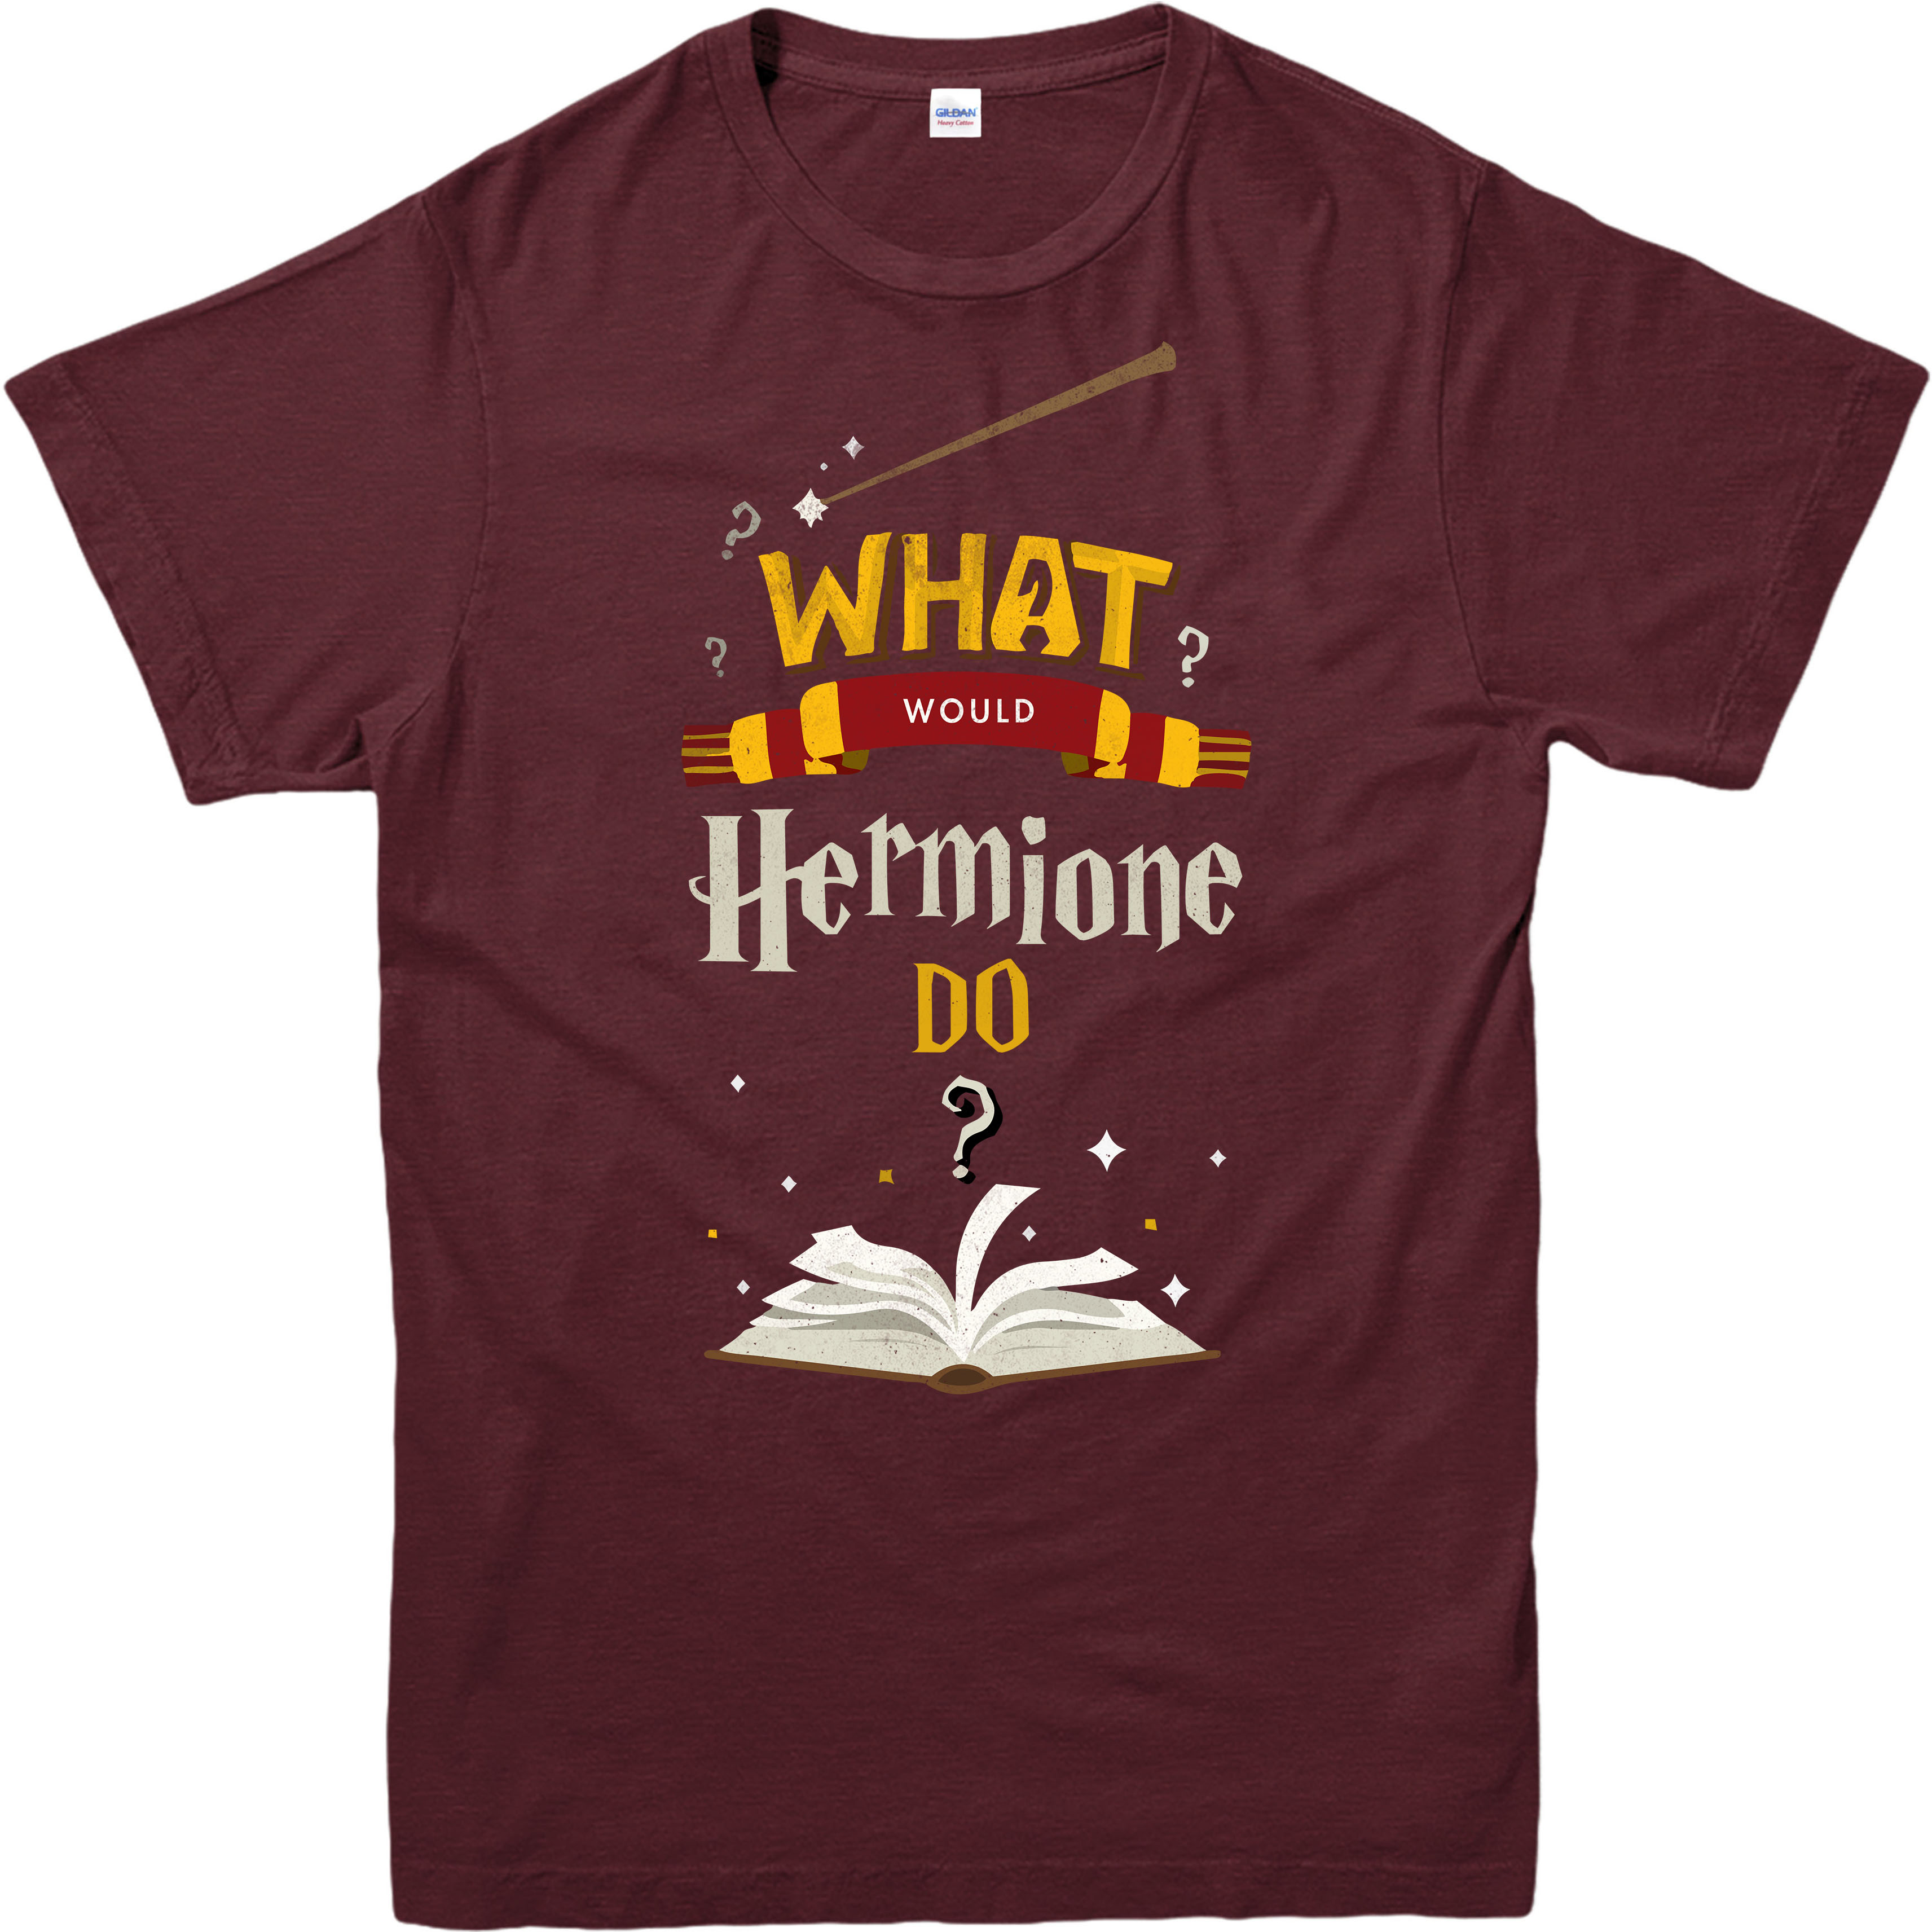 Harry potter t shirt what would hermione do final book for Entire book on shirt